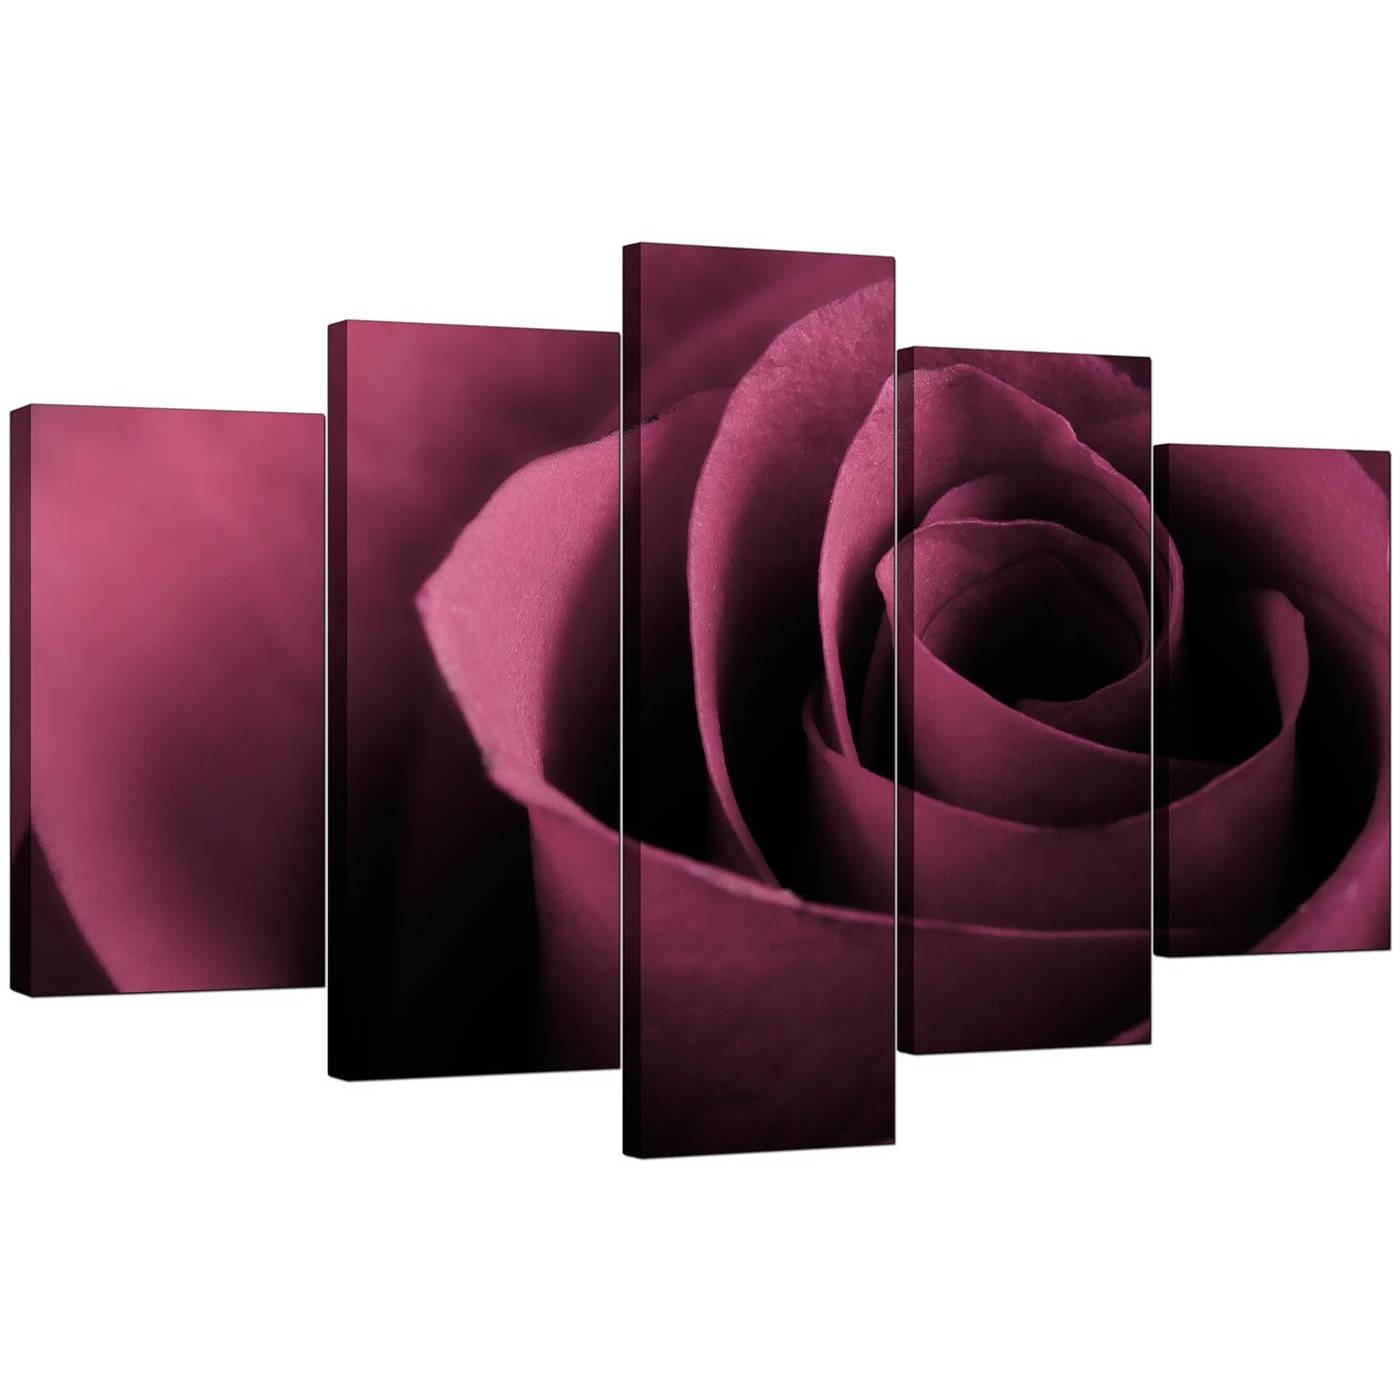 Extra Large Rose Canvas Wall Art Five Piece In Plum With Regard To Latest Rose Canvas Wall Art (View 15 of 20)